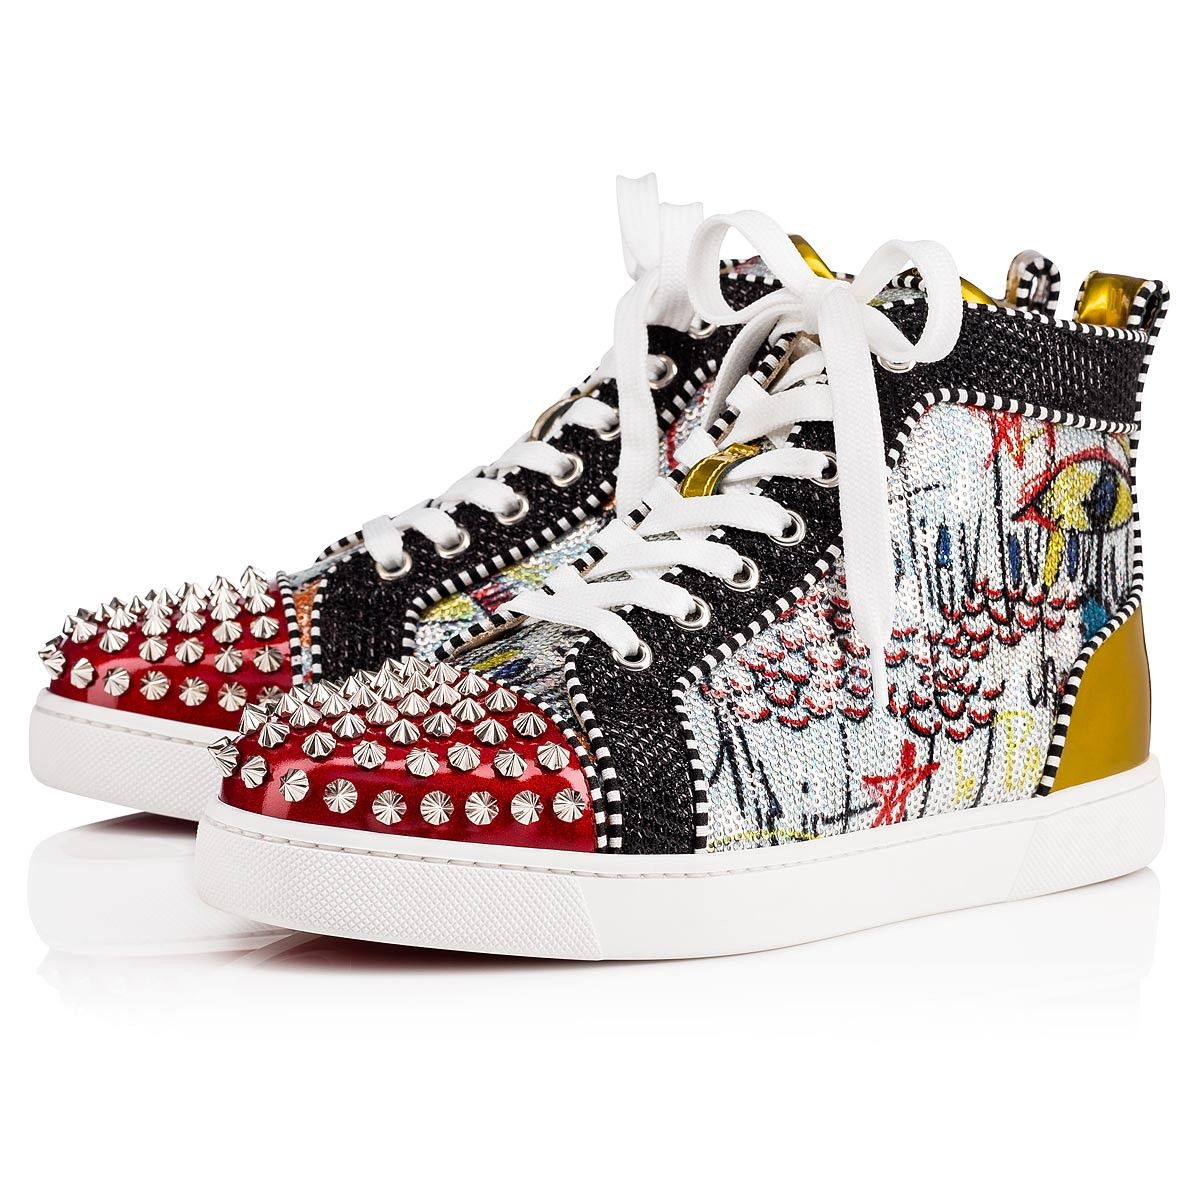 4a593baab0d2 Christian Louboutin United States Official Online Boutique - Lou Spikes  Woman Flat Version Multi Loubitag Paillette available online.